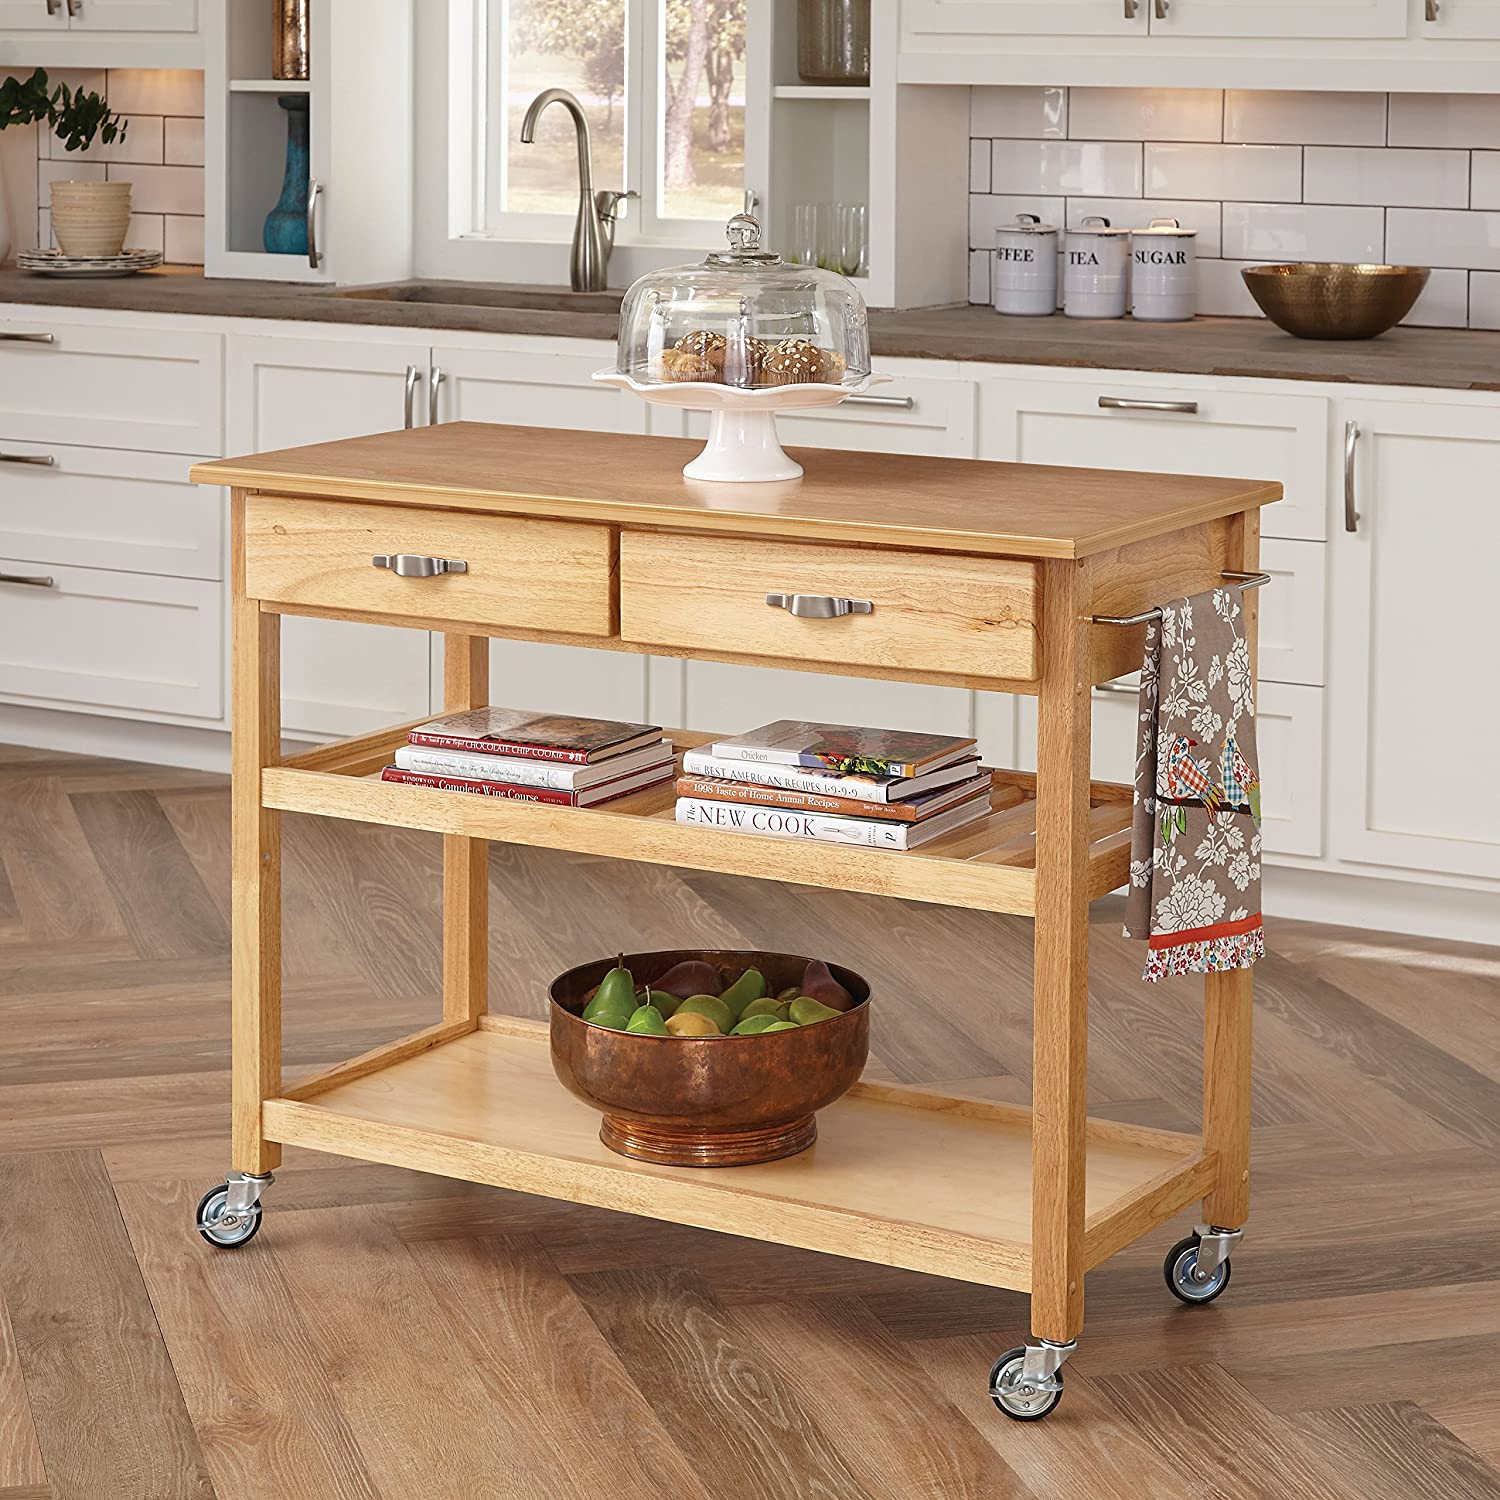 Gentil Amazon.com: Home Styles 5216 95 Solid Wood Top Kitchen Cart, Natural  Finish: Kitchen U0026 Dining